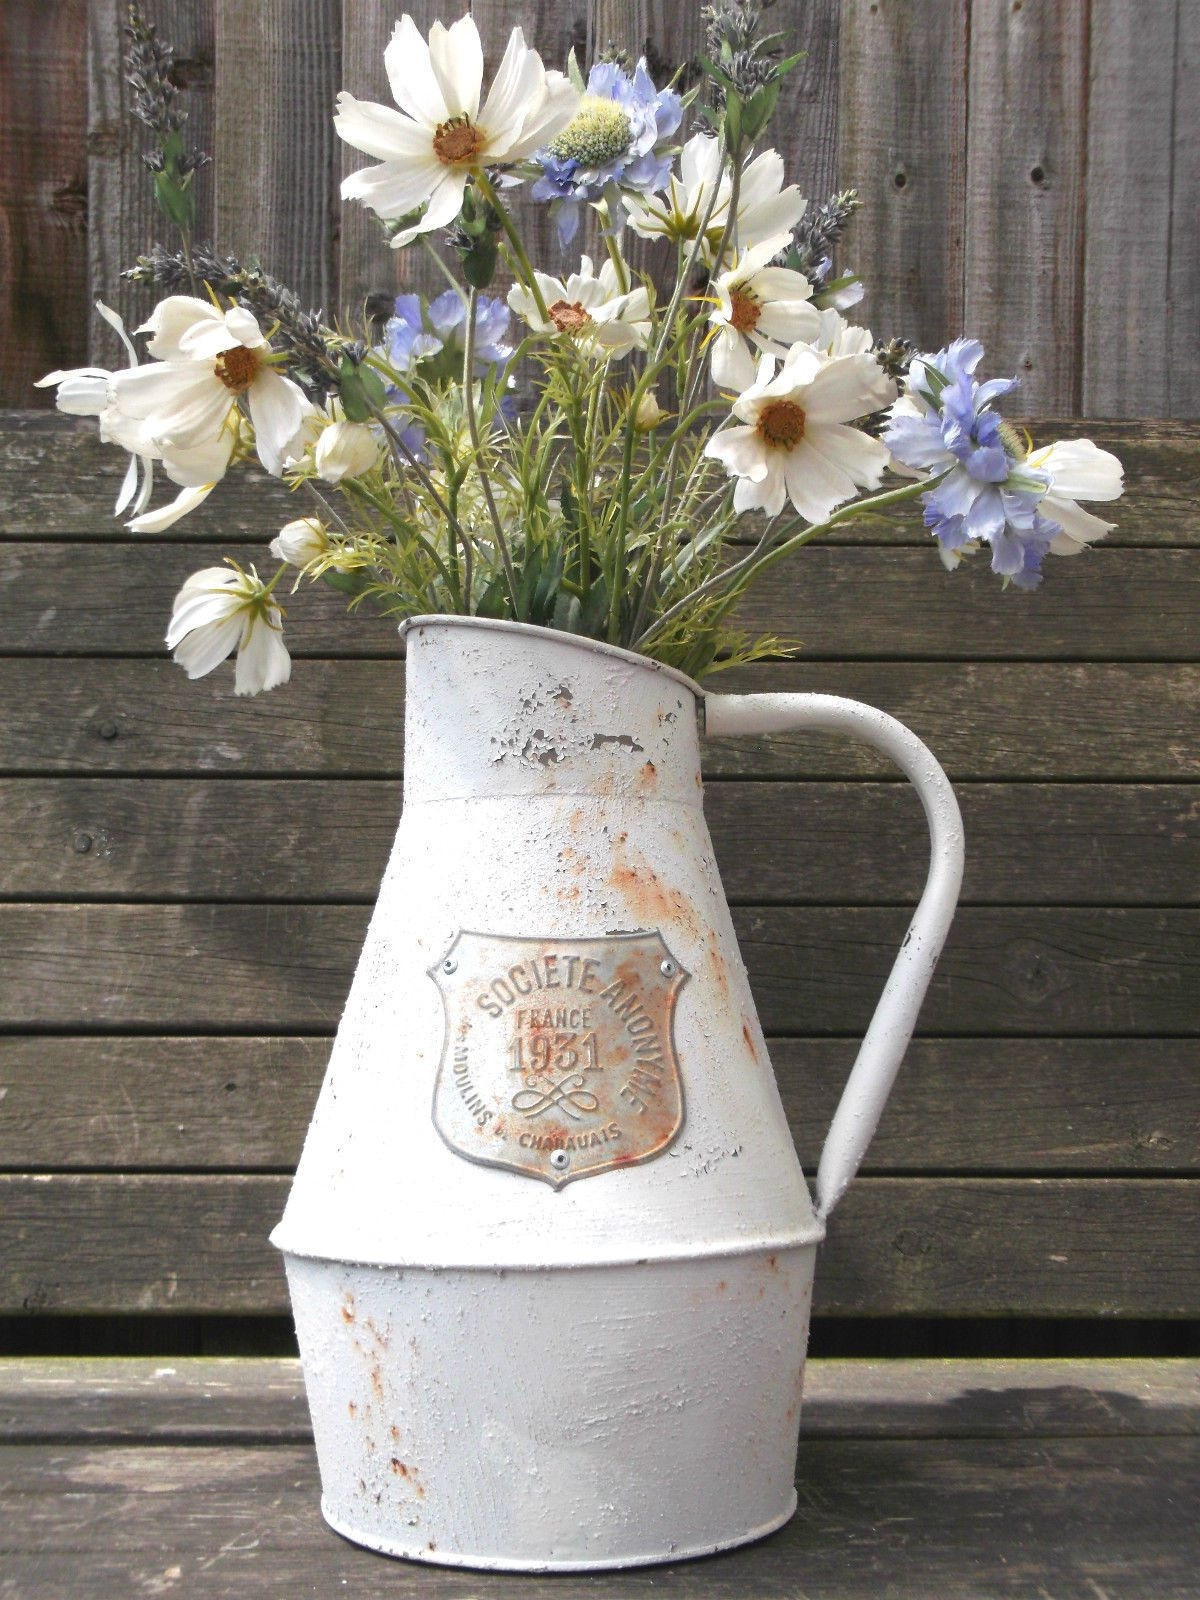 Glass Vase with Iron Stand Of Galvanized Flower Vase Pictures French Flower Bucket H Vases within Galvanized Flower Vase Pictures French Flower Bucket H Vases Galvanized French Vase Tin Bucketi 0d Of